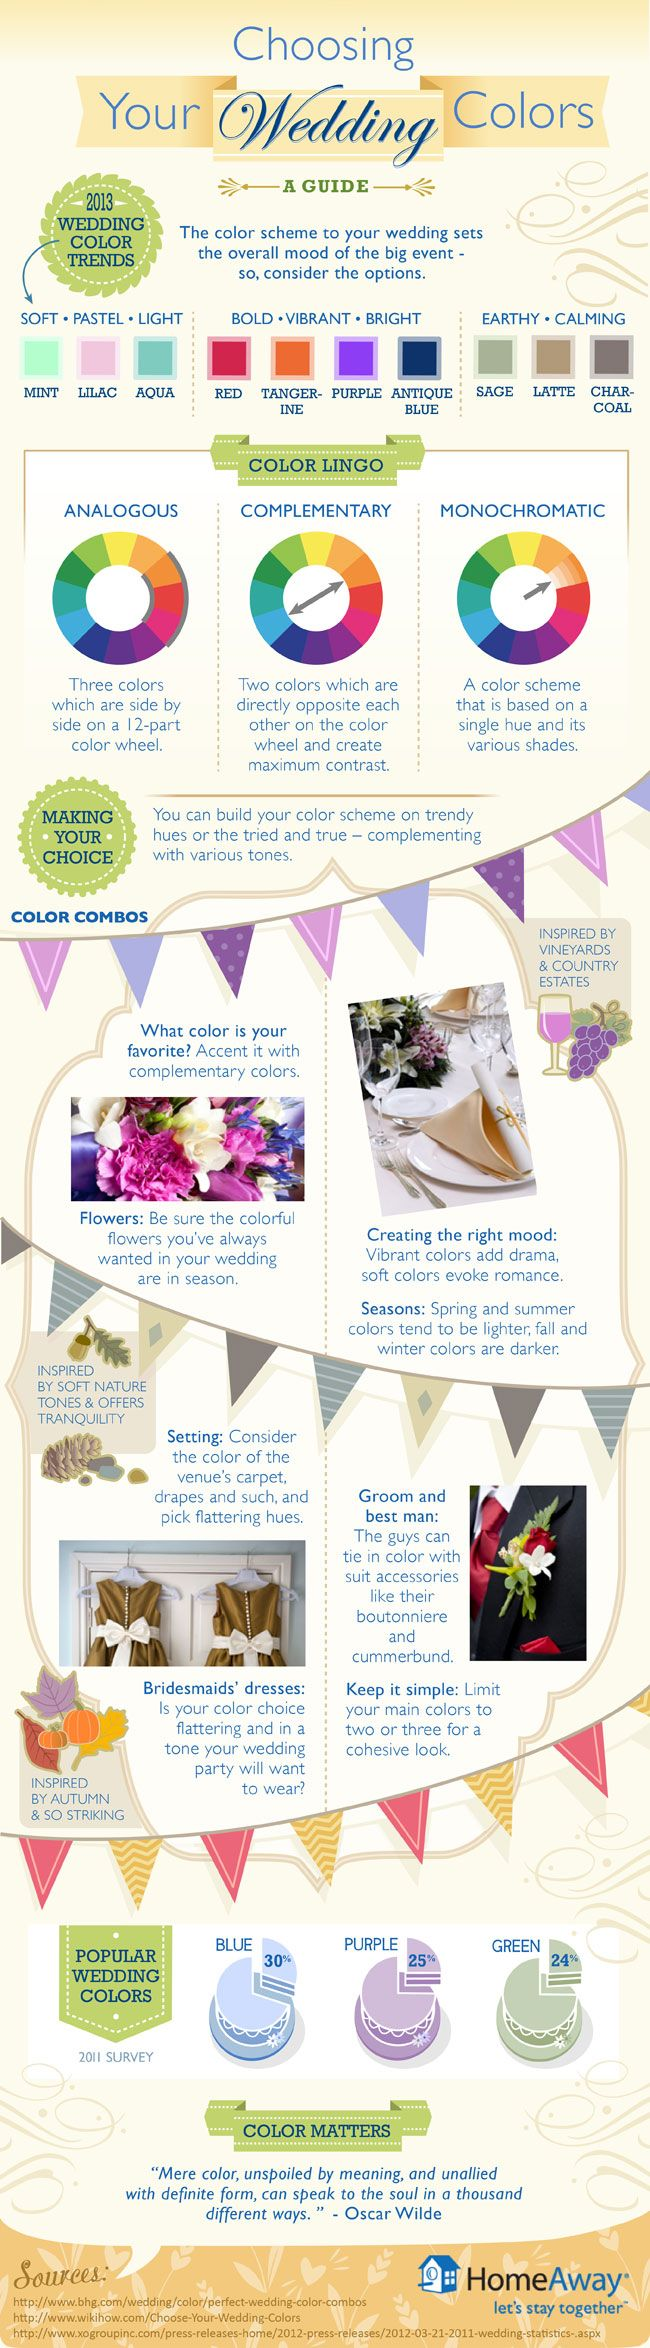 This is great if you need help figuring out what your wedding color scheme should be.